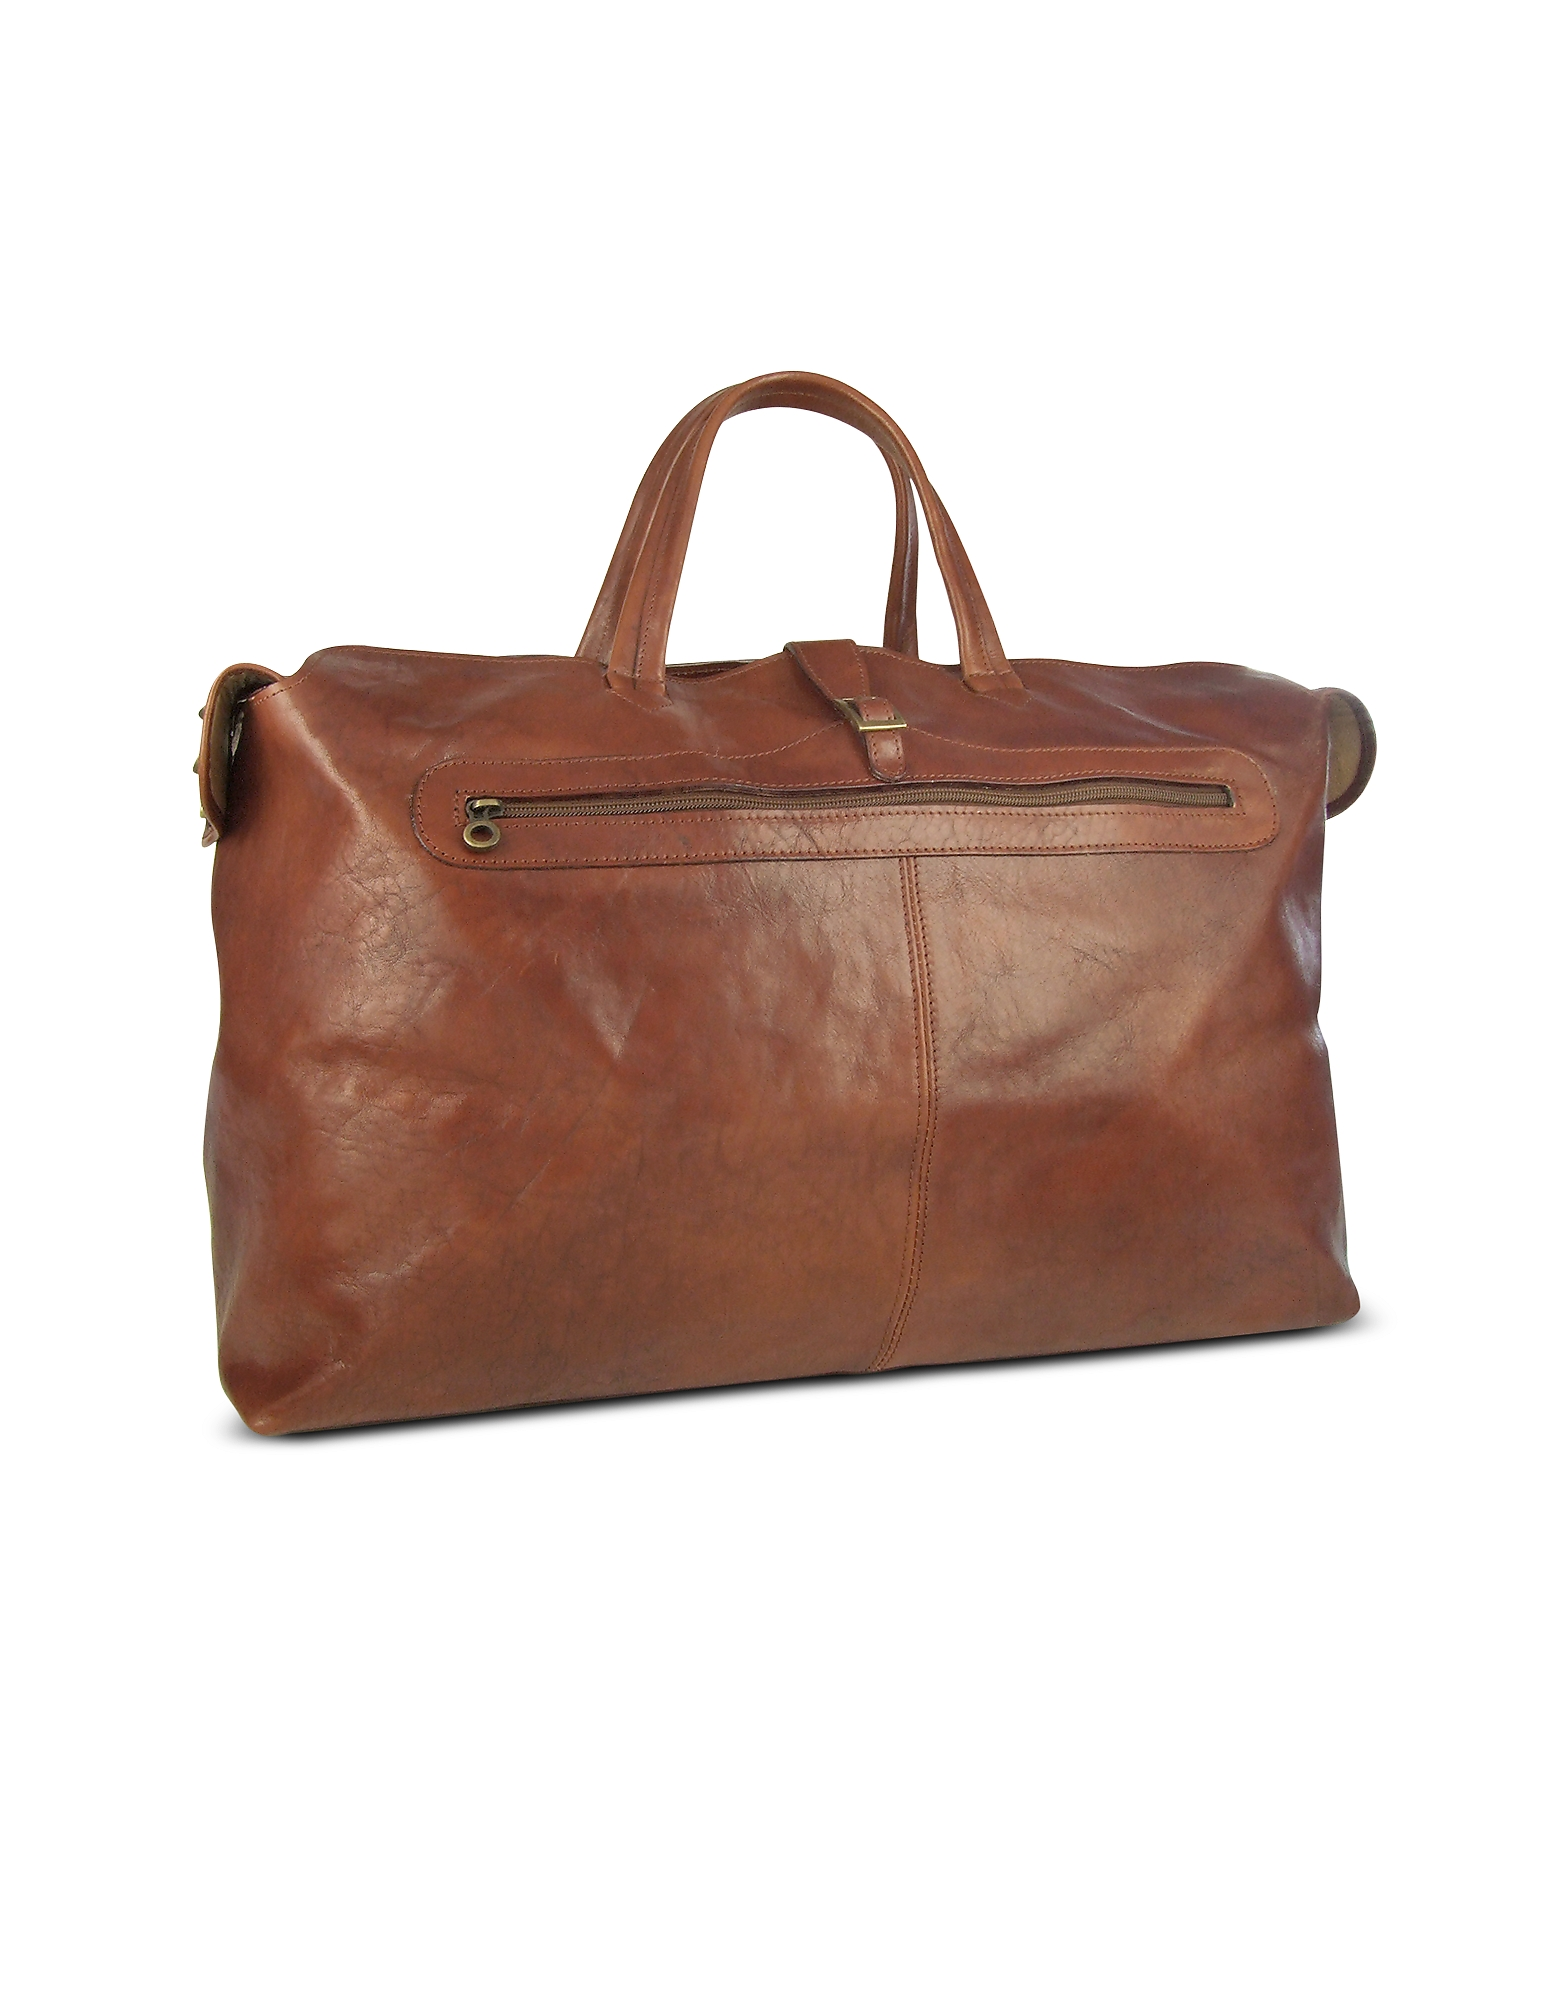 Robe di Firenze Travel Bags, Large Brown Italian Leather Carry All Travel Bag